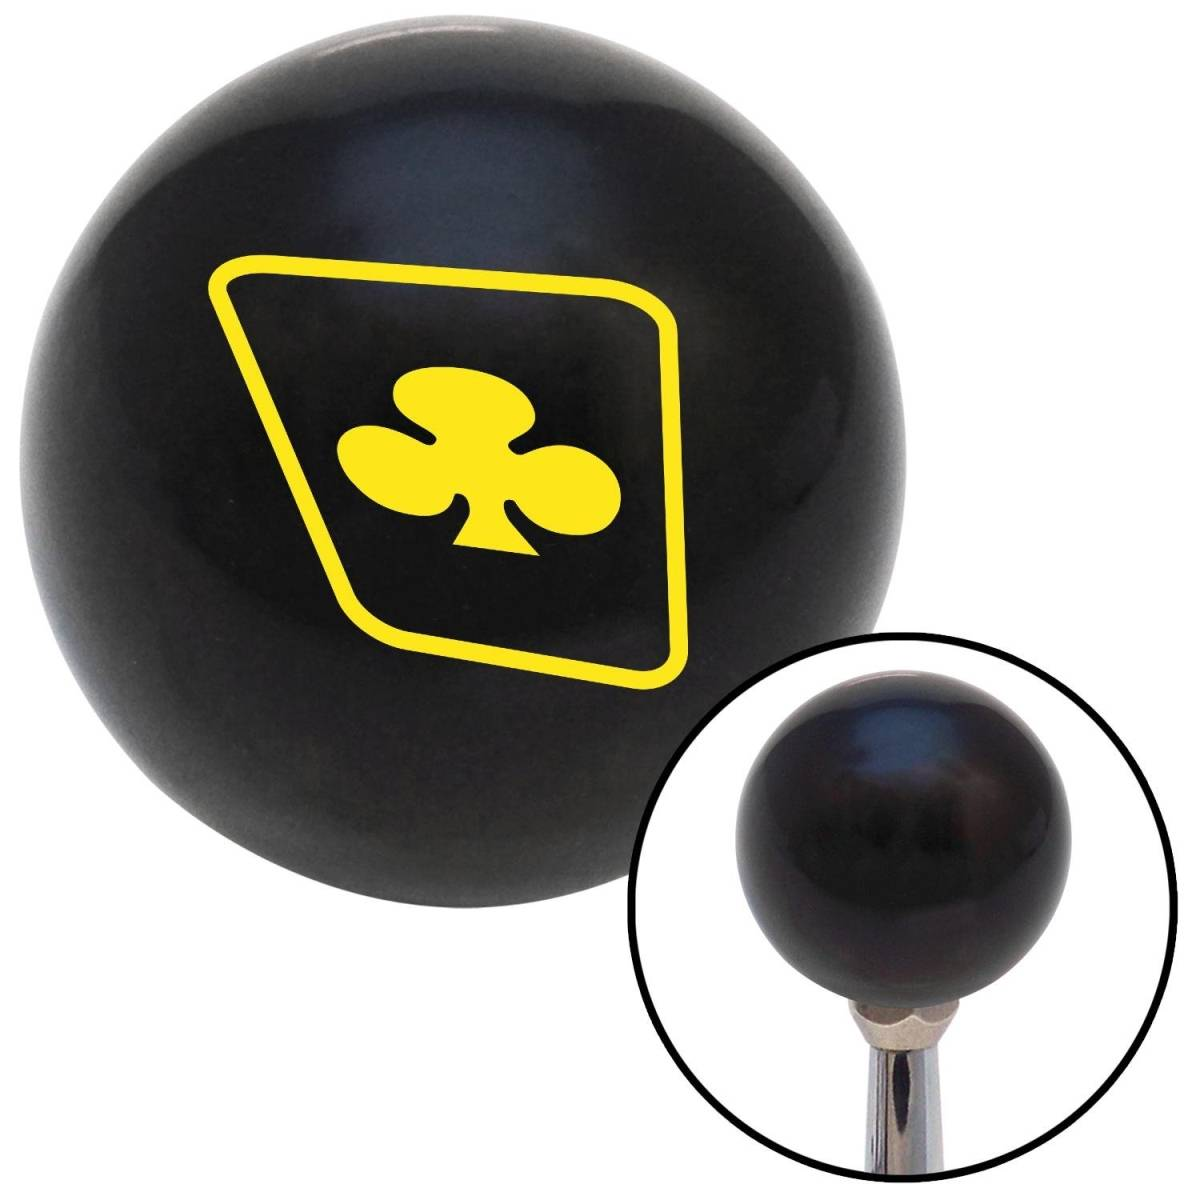 American Shifter Company American Shifter 104196 Yellow Clubs on a Card Black Shift Knob with M16 x 1.5 Insert Shifter Auto Manual